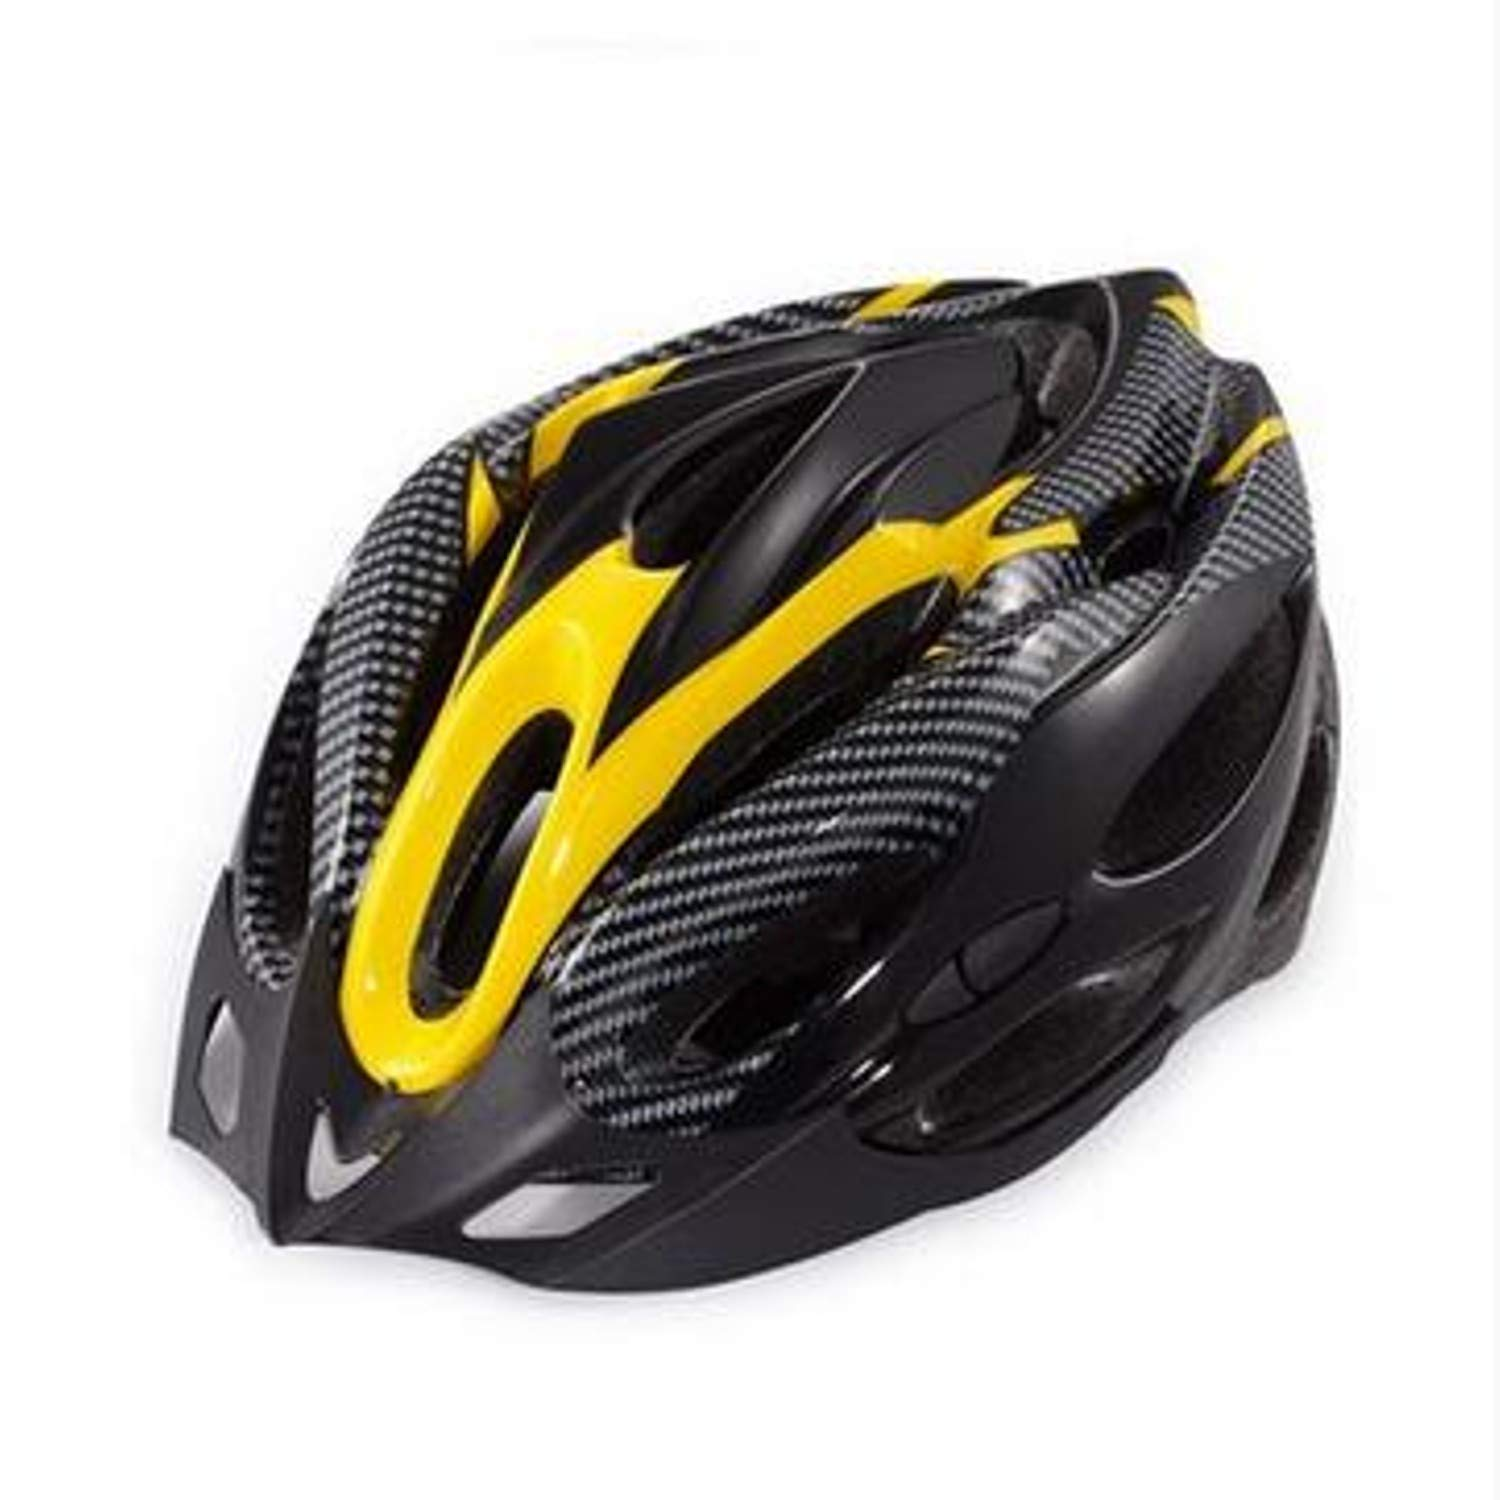 Egyptian Road Bike Bicycle Cycling Safety Helmet/Hat / Cap for Kid Age 8-14 Black Yellow EPS+PC Material Ultralight Breathable MTB Cycling Helmet